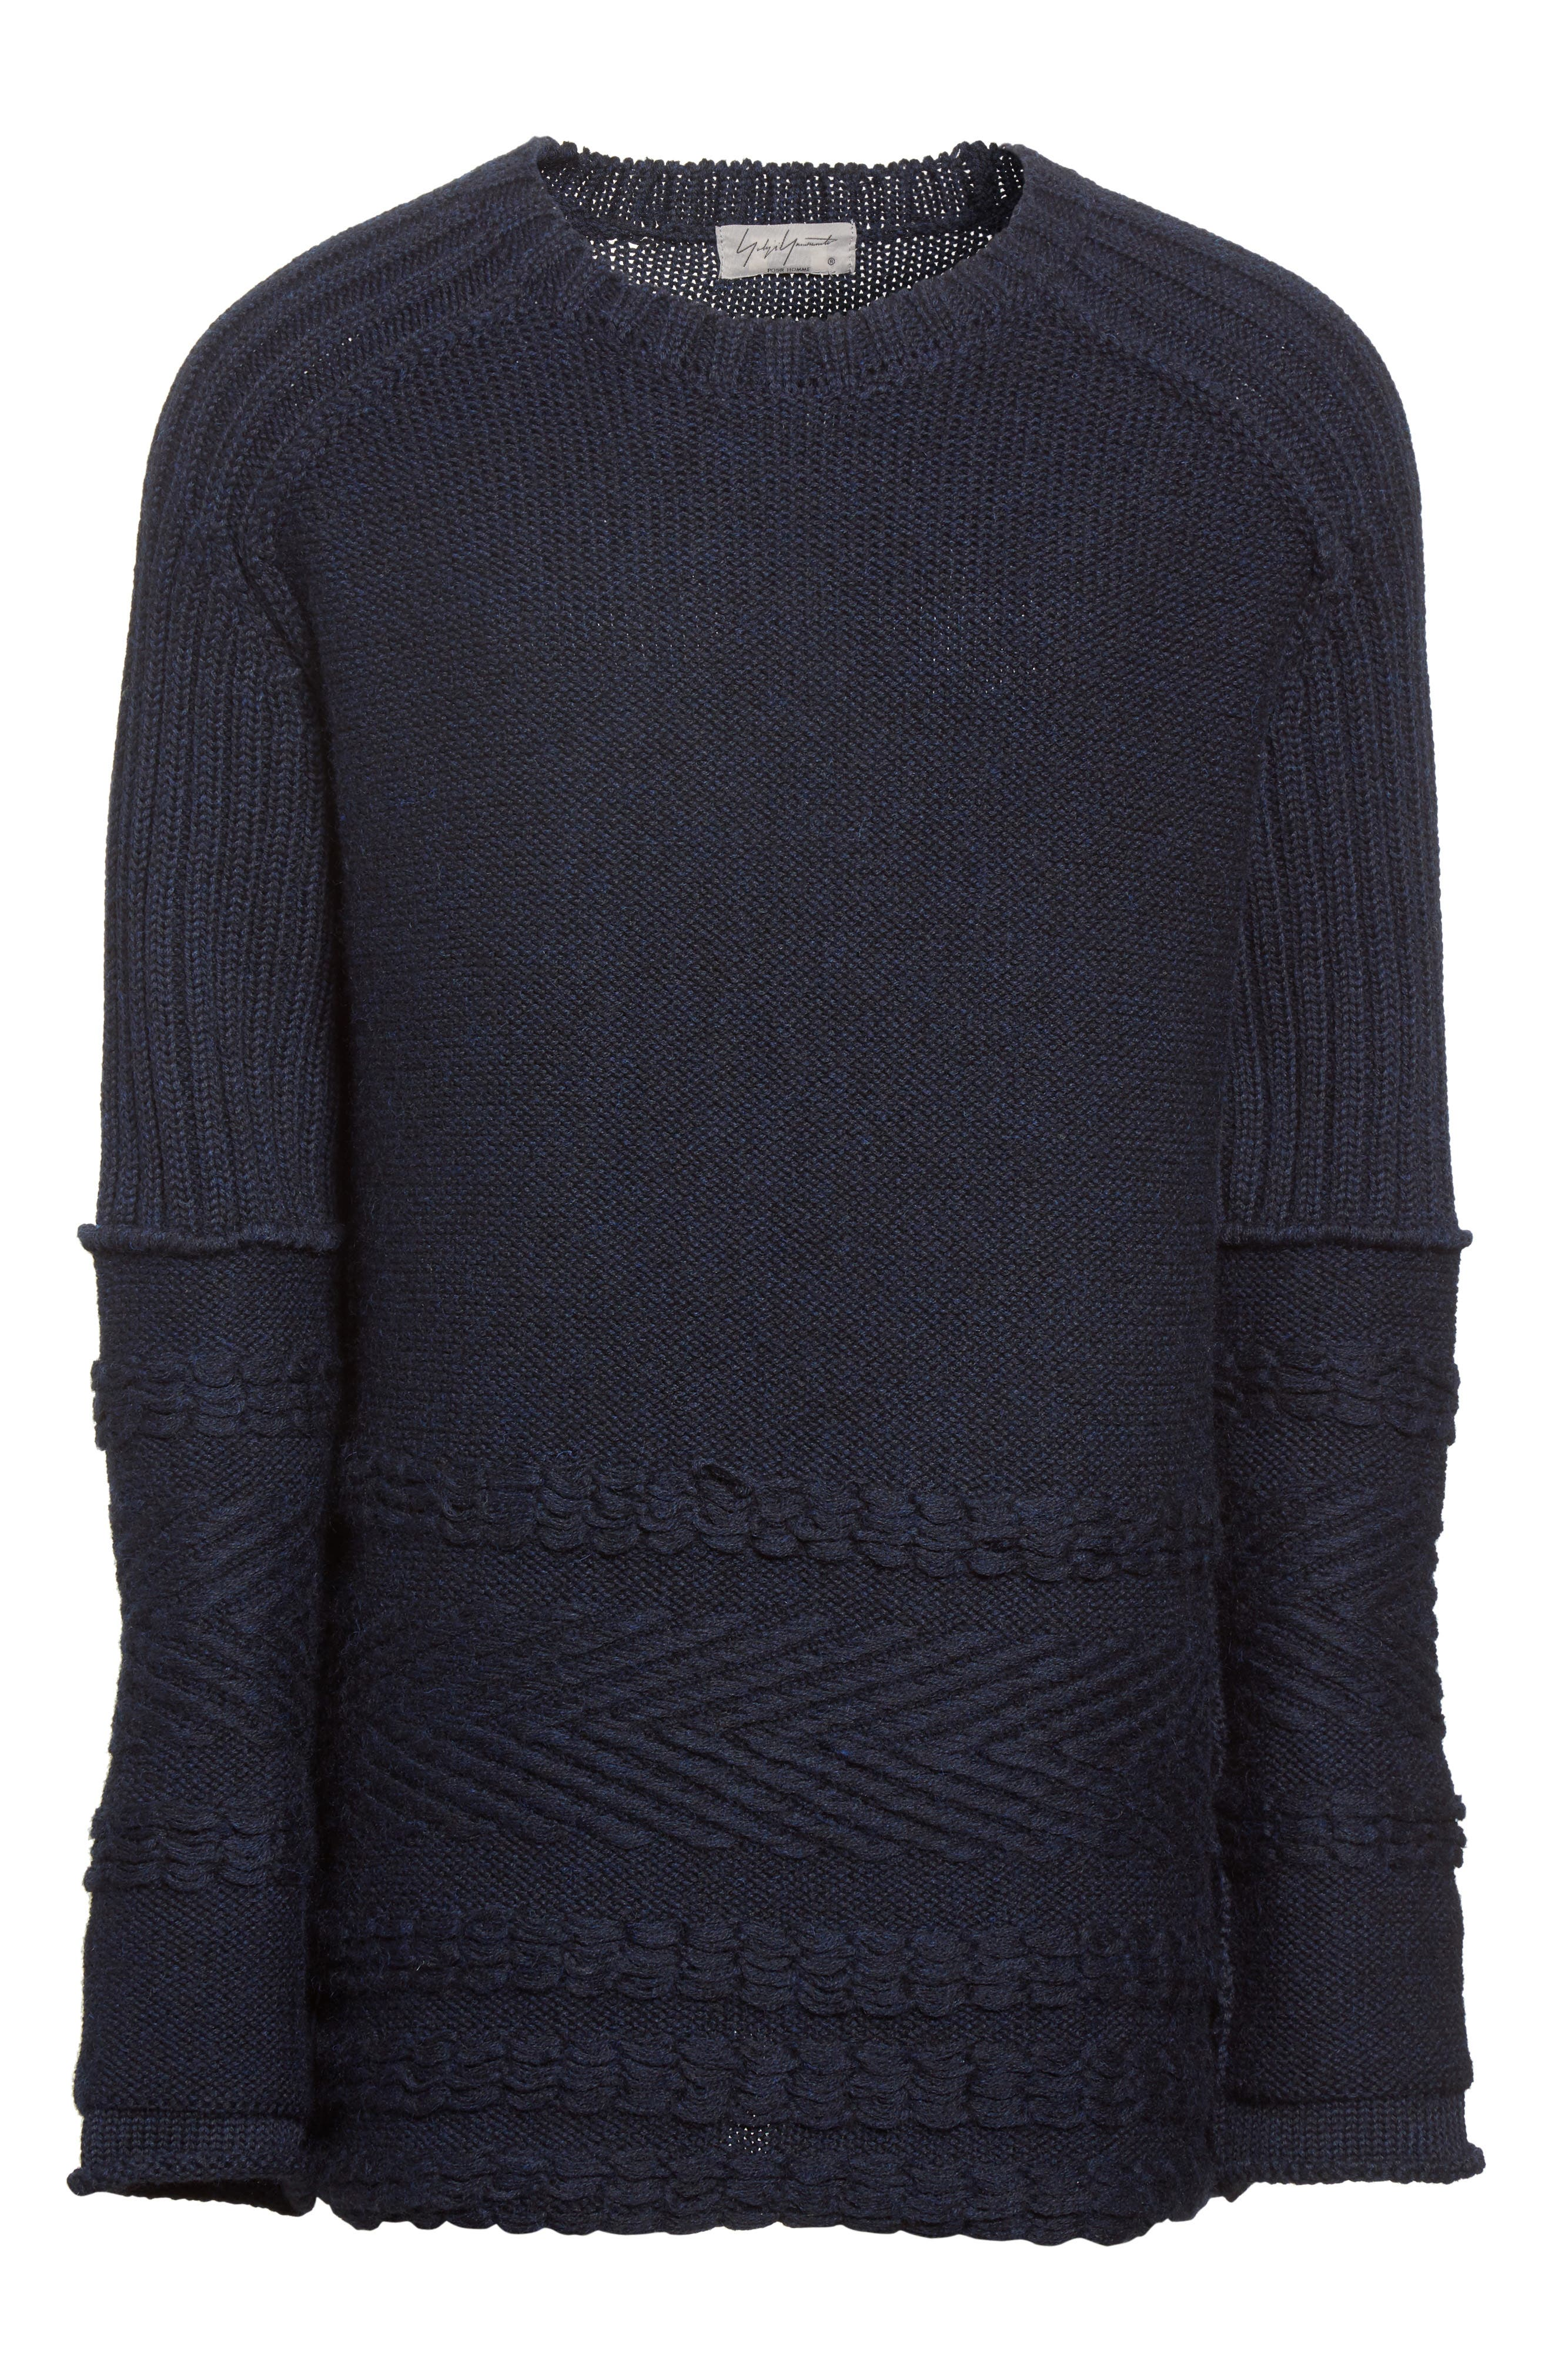 Mixed Knit Wool Sweater,                             Alternate thumbnail 6, color,                             410